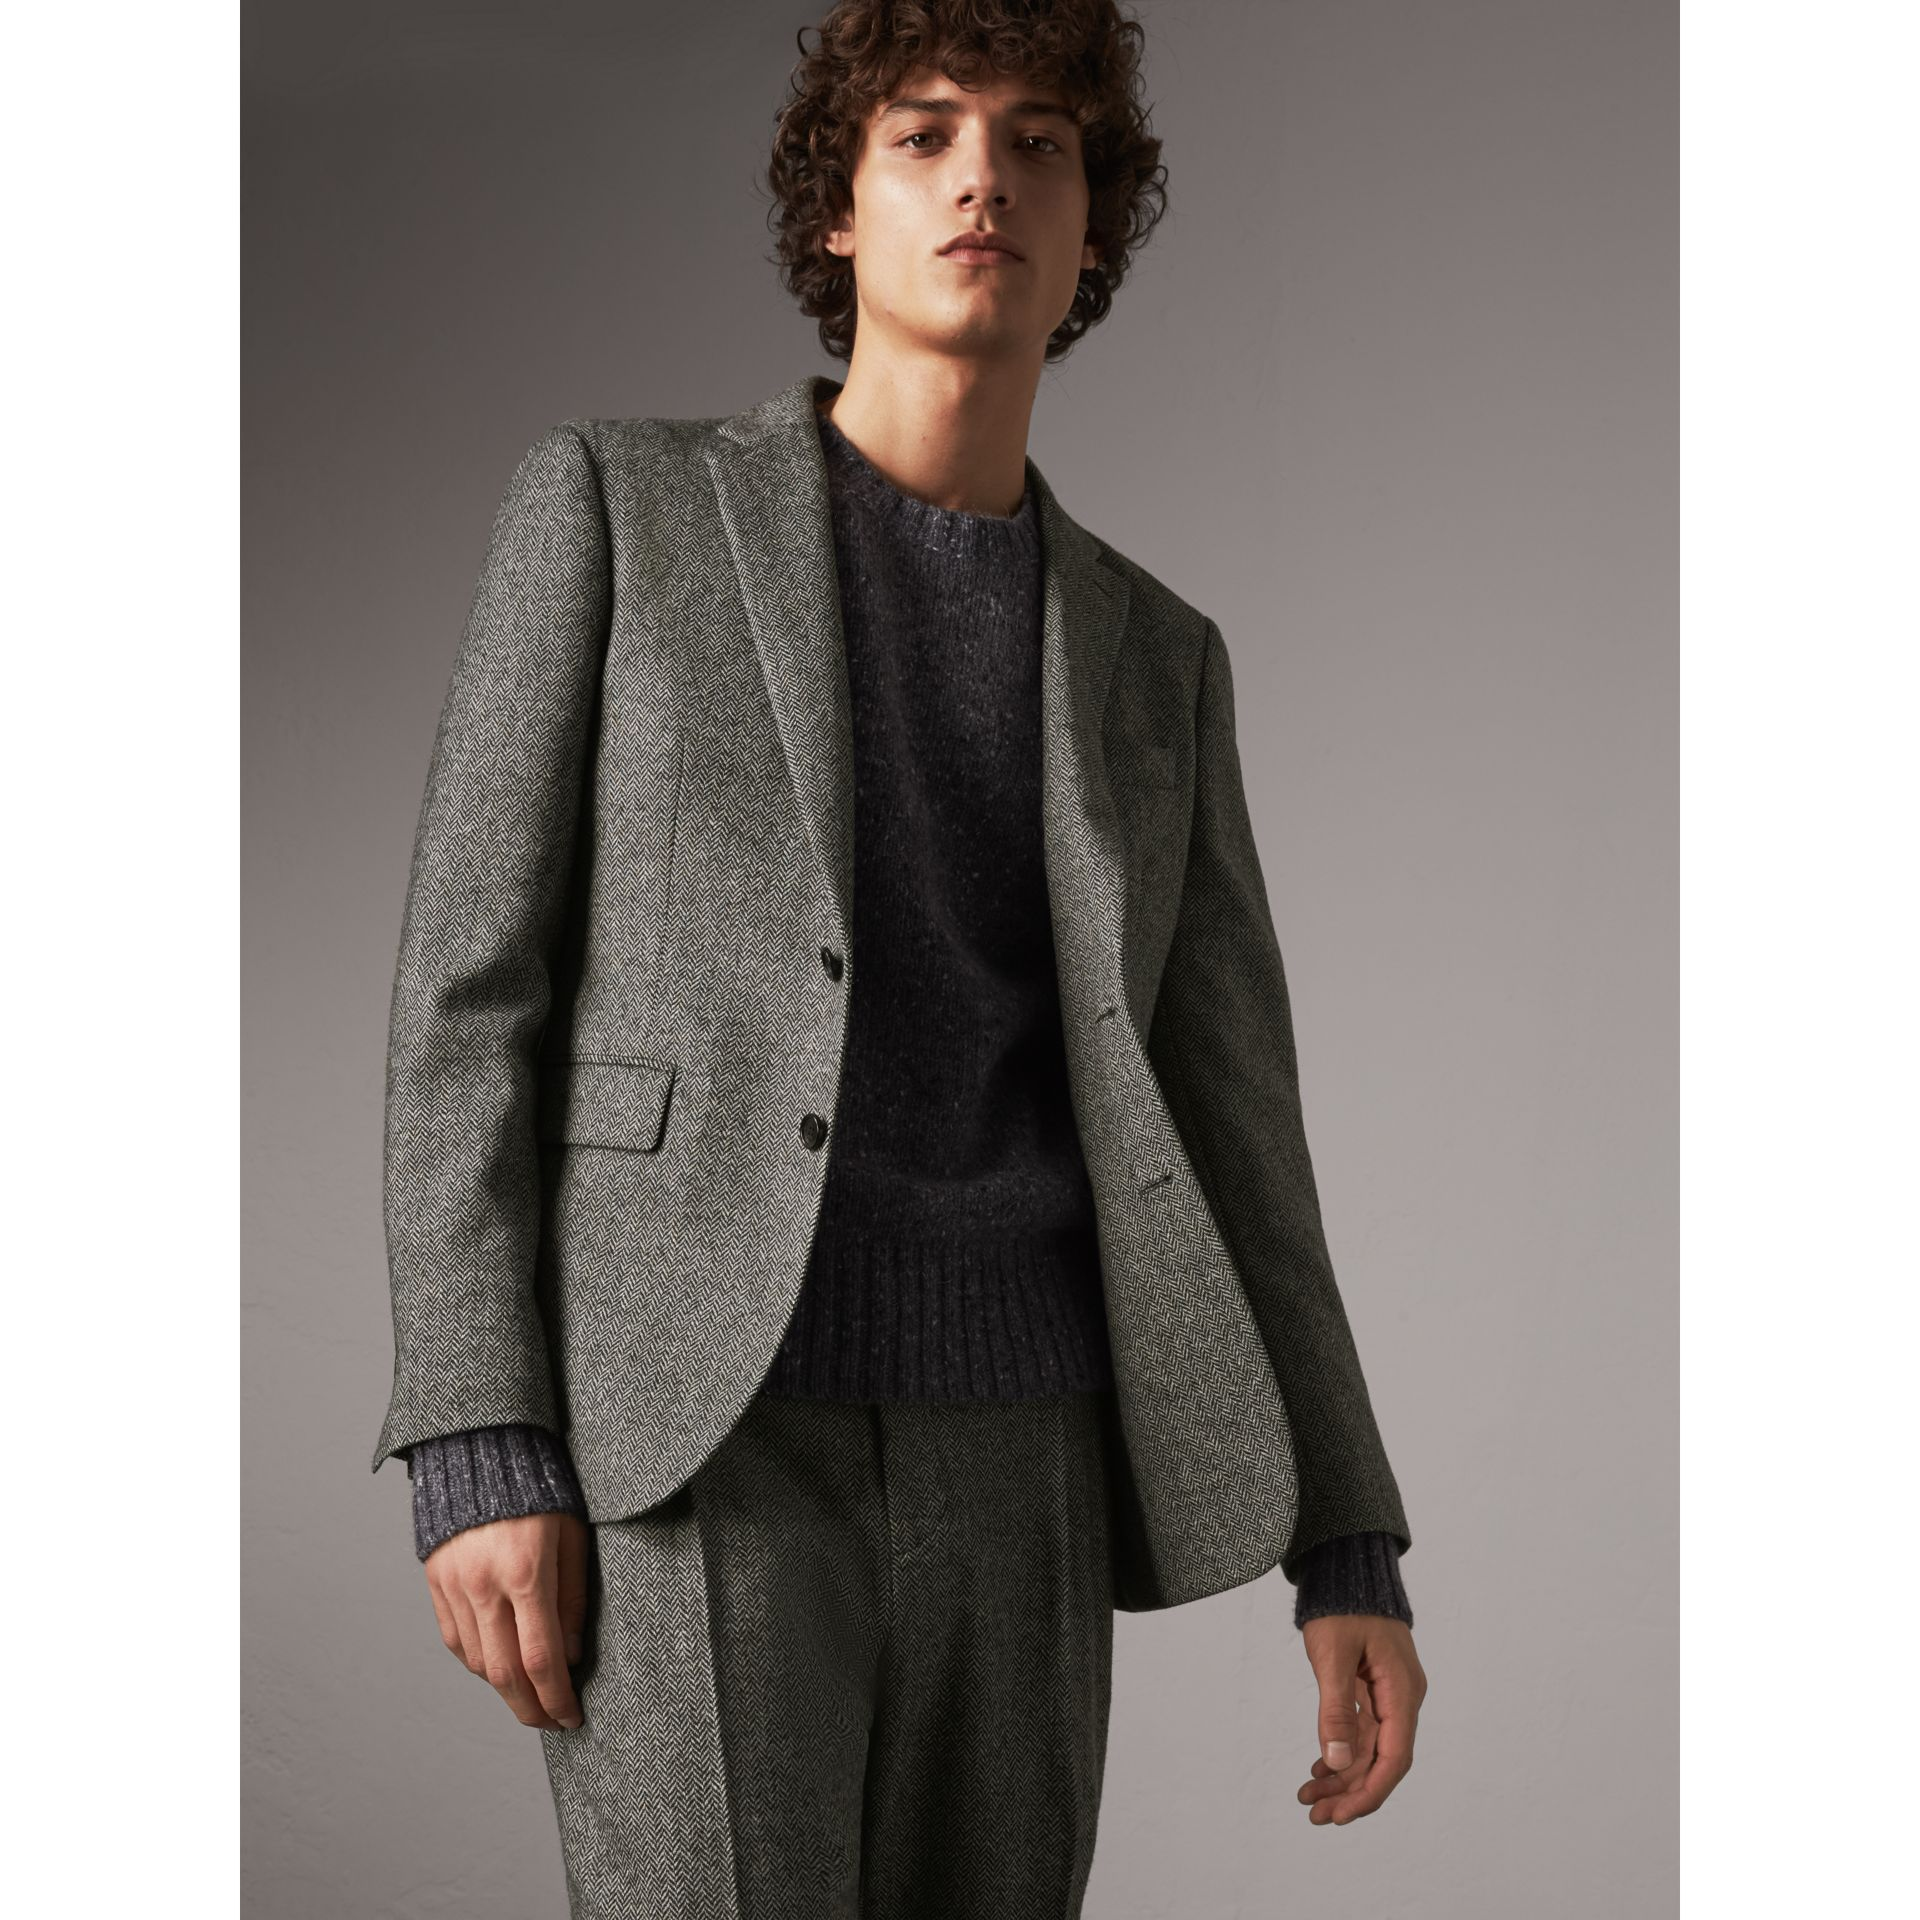 Soho Fit Herringbone Wool Tailored Jacket in Black / White - Men | Burberry - gallery image 6